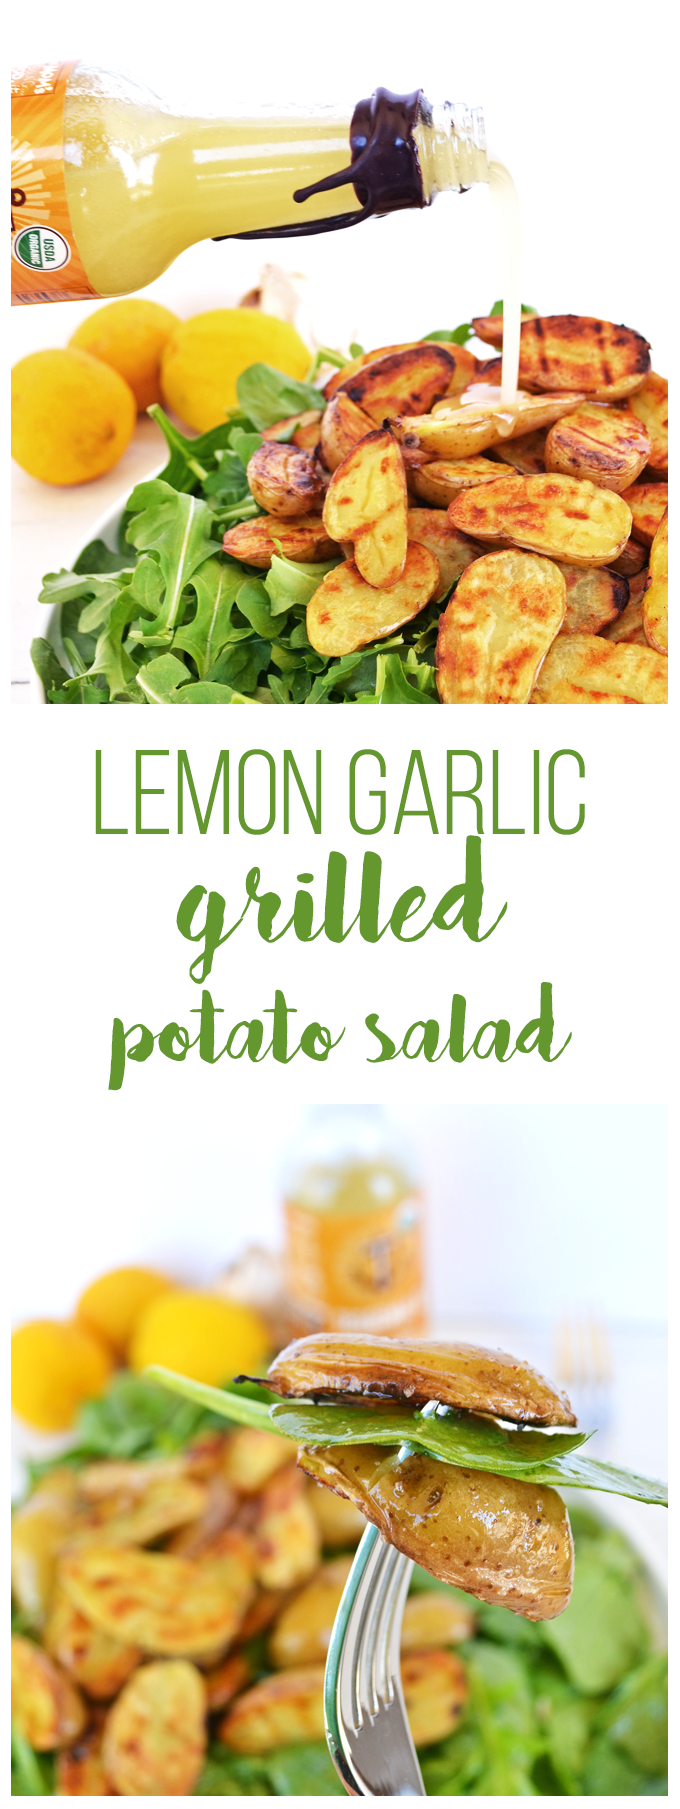 Tessamae's Lemon Garlic Vinaigrette uses all clean and Whole 30 approved ingredients and goes perfectly on this Grilled Potato Salad! It is a perfect light side dish for any spring or summer barbecue!